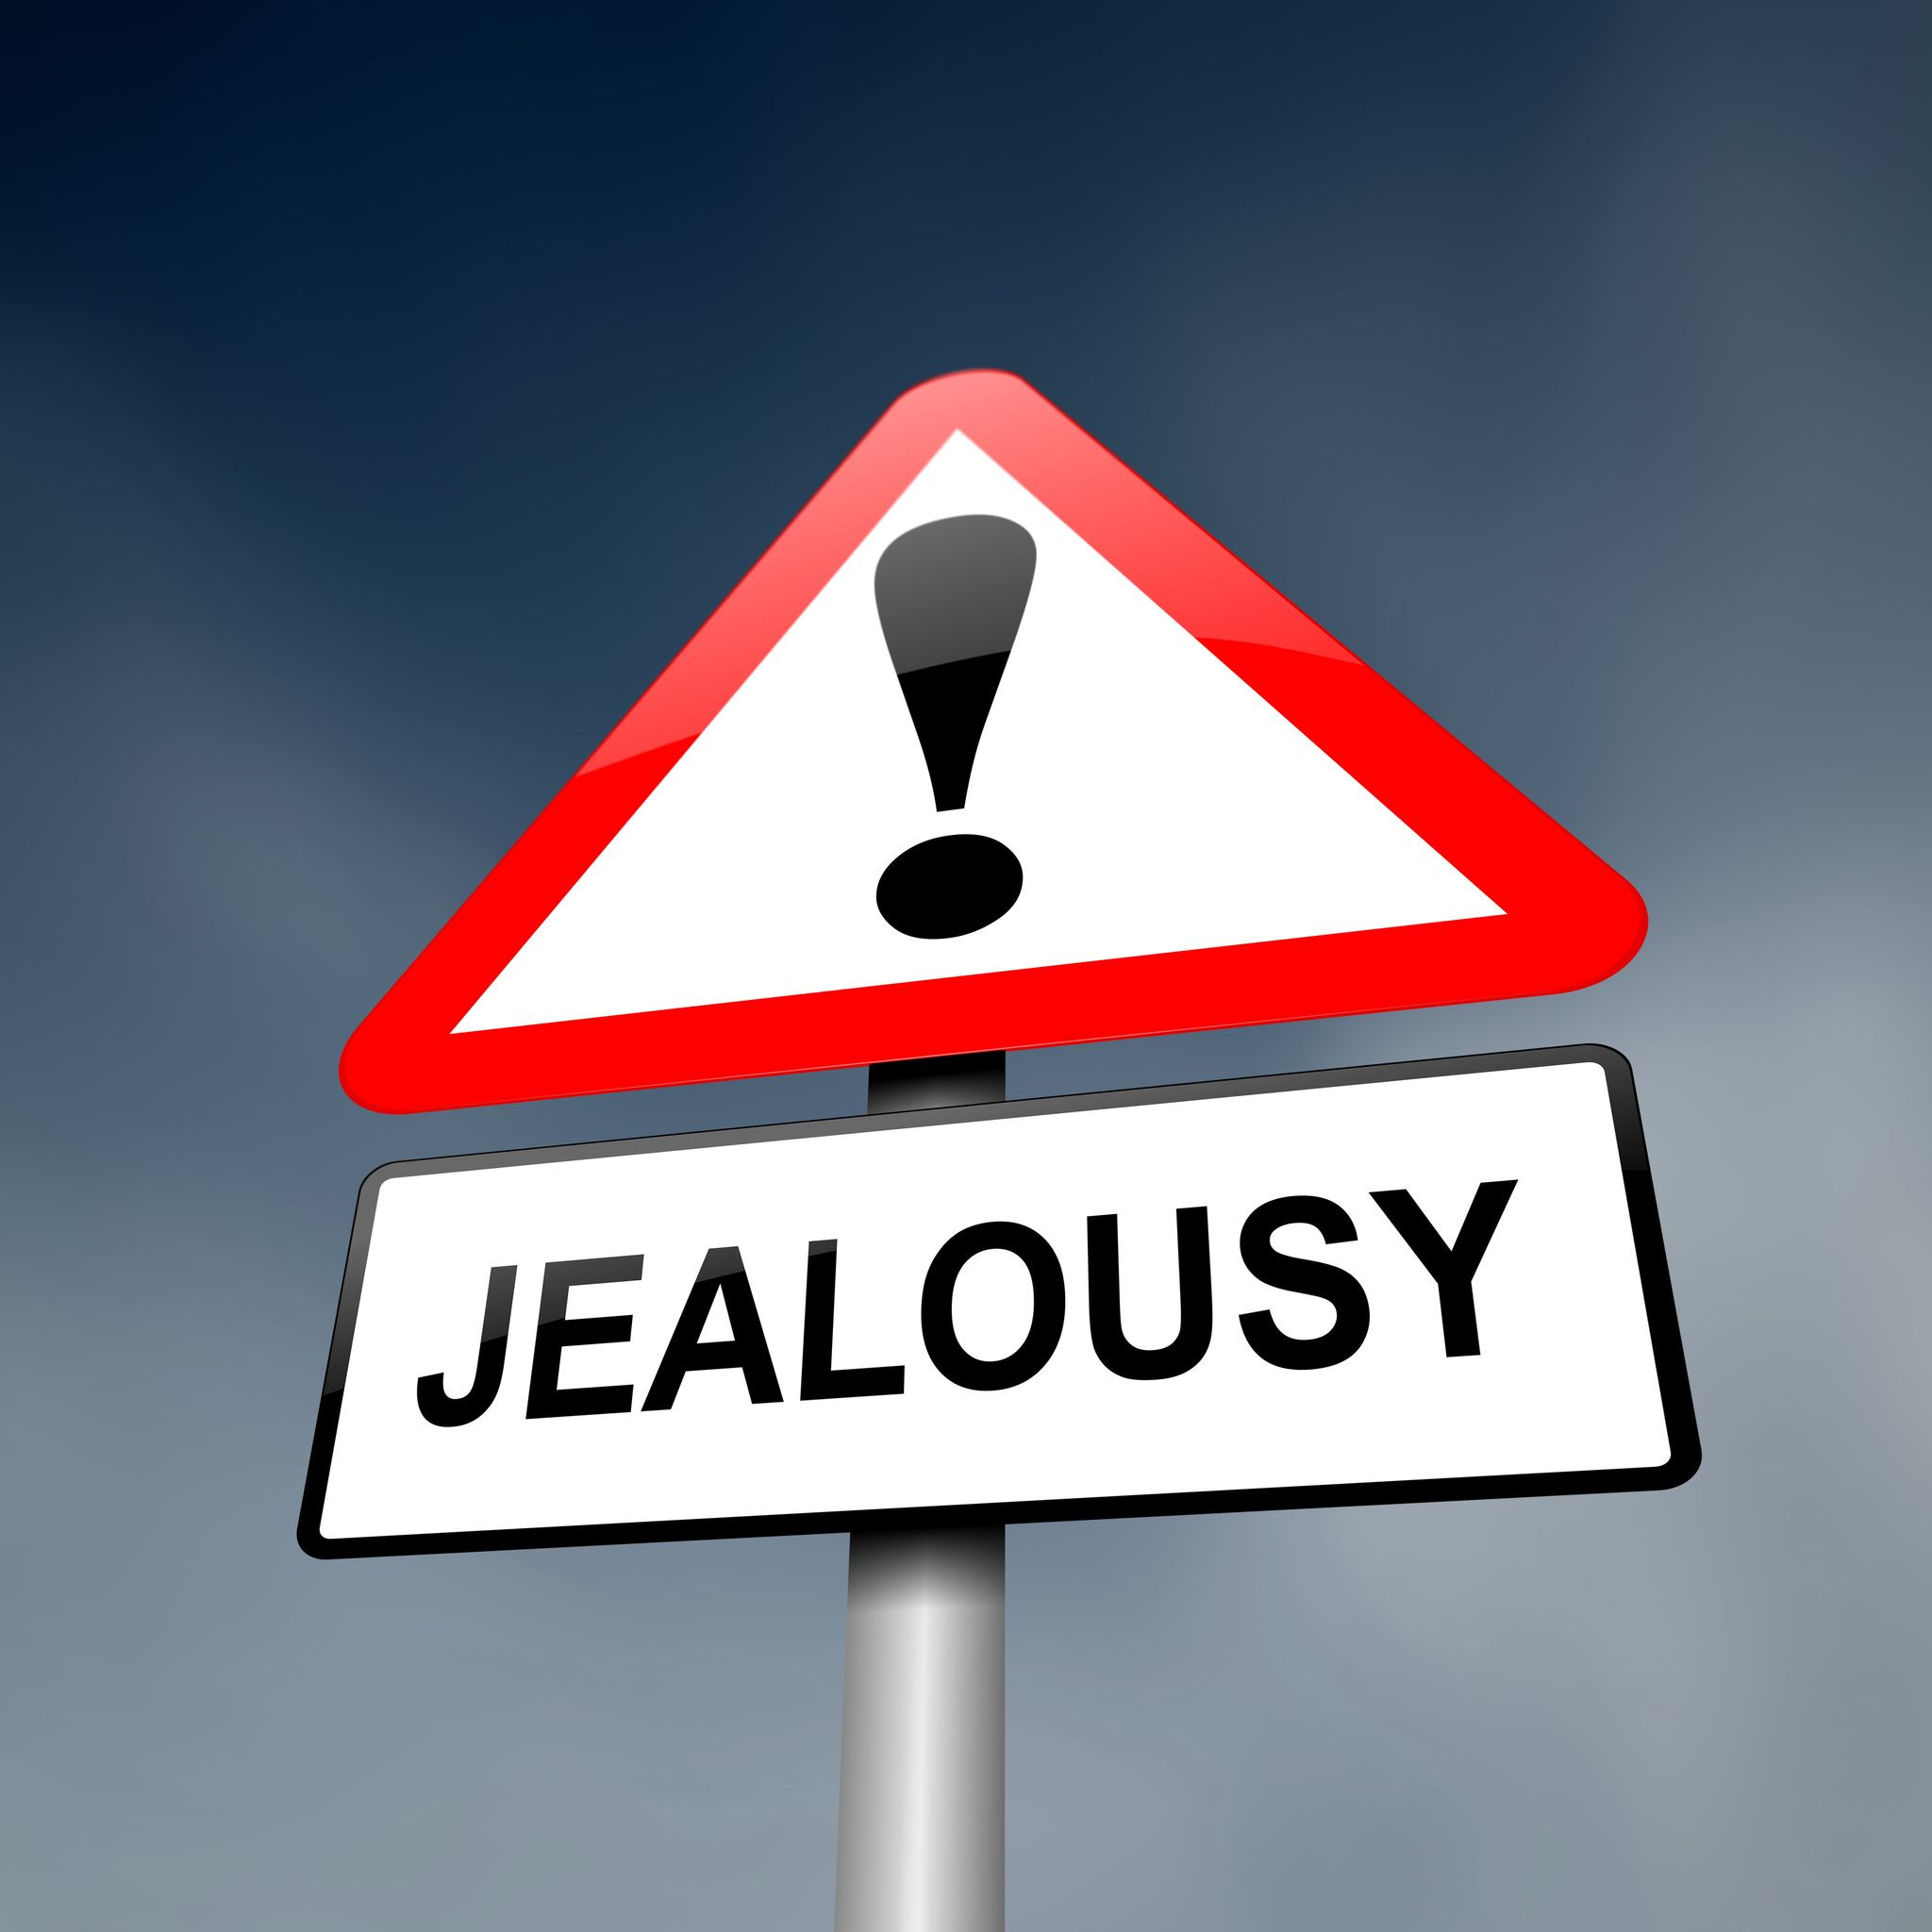 Insecurity, Jealousy & Envy as I know it!